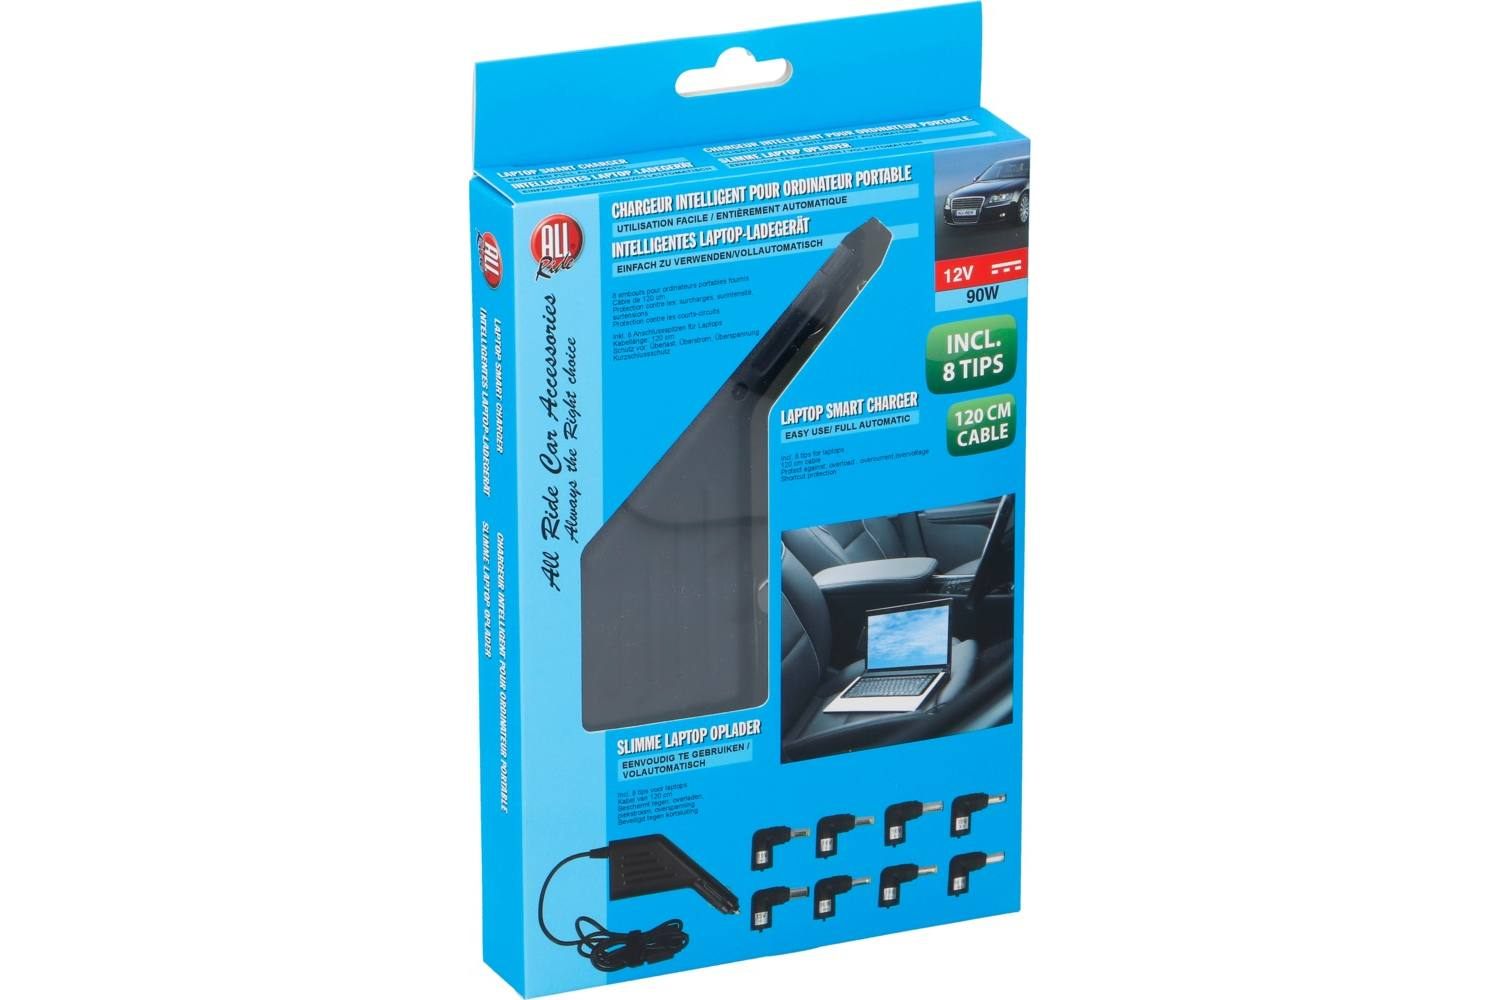 Charger, AllRide, smart, 12V, 90W, laptop, with 8 tips 2